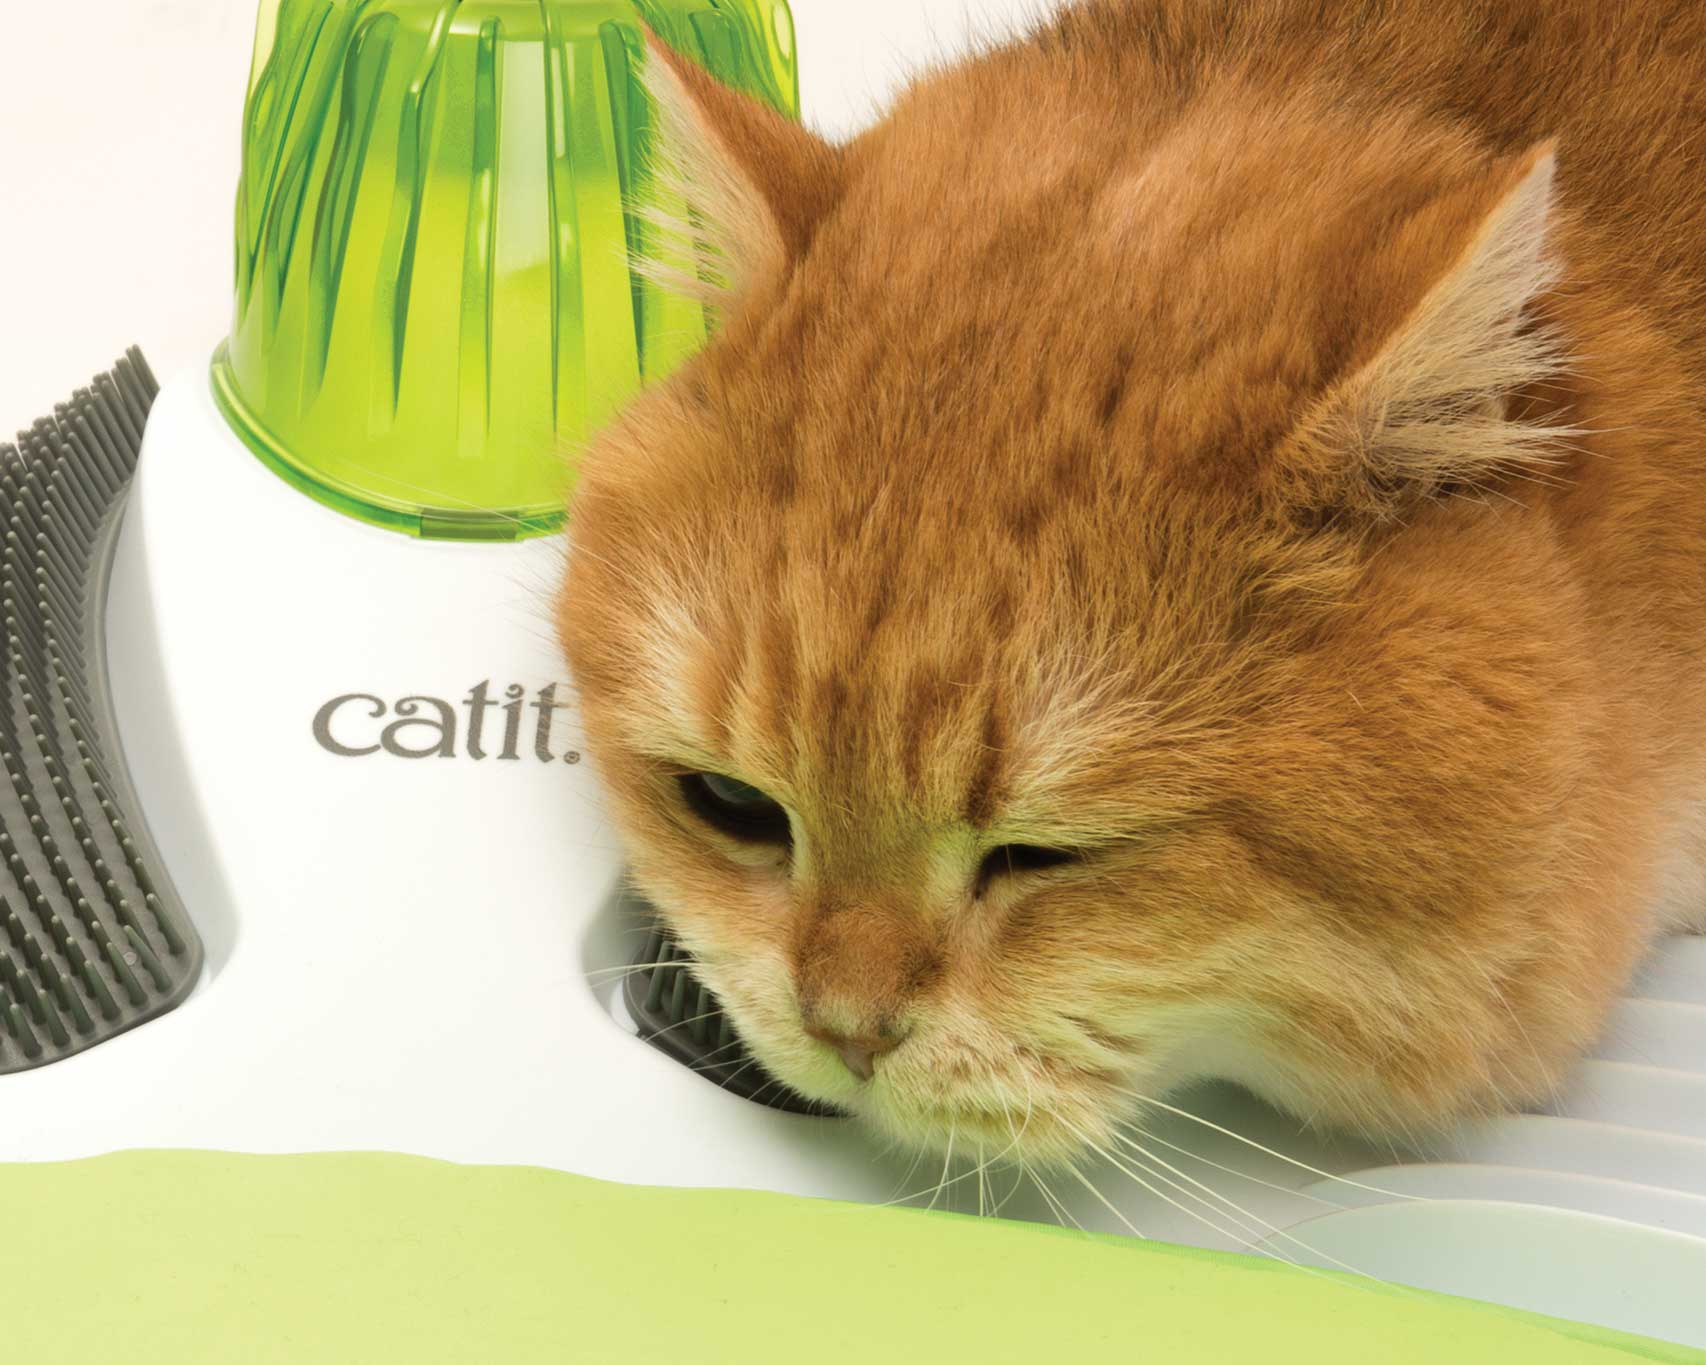 ginger cat grooming herself on the wellness kit